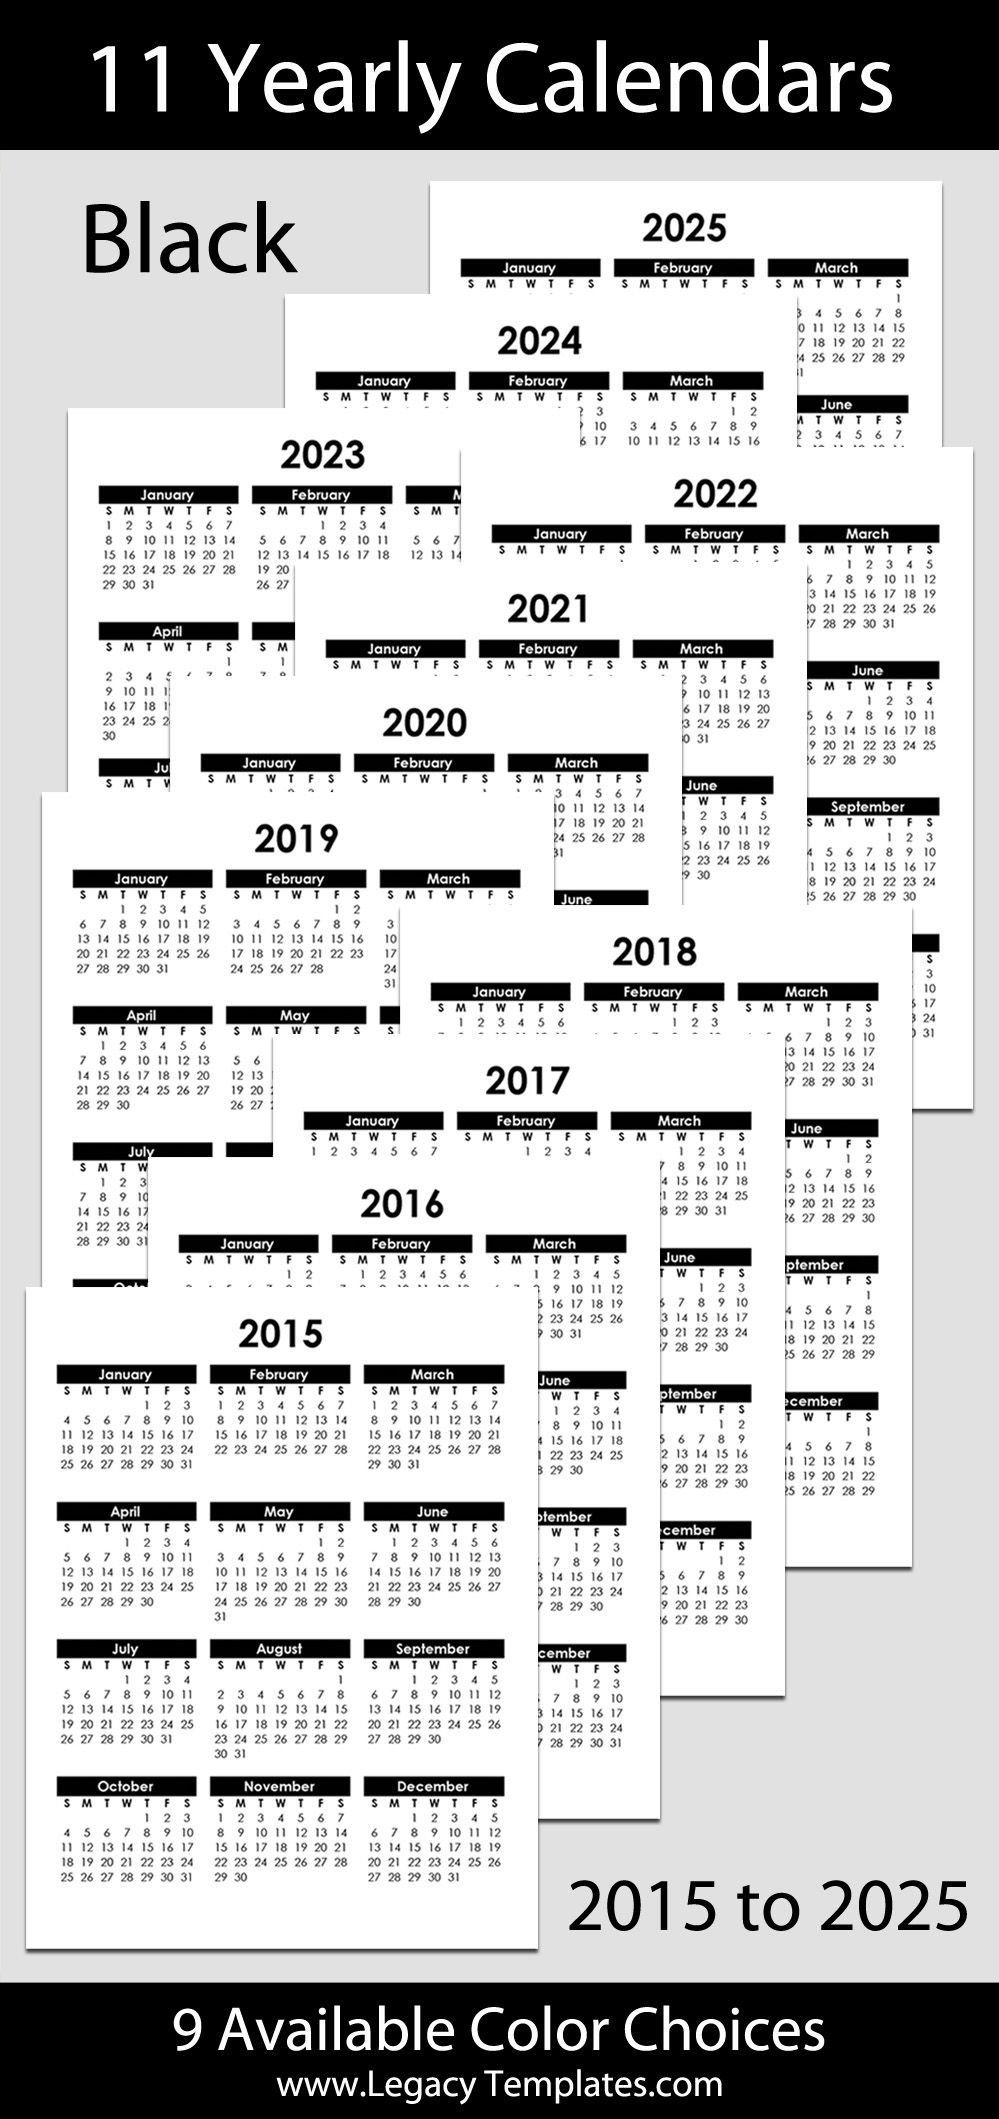 2015 To 2025 Printable Yearly Calendars - Letter Size – 8 Free Printable Calendars 5 1/2 X 8 1/2